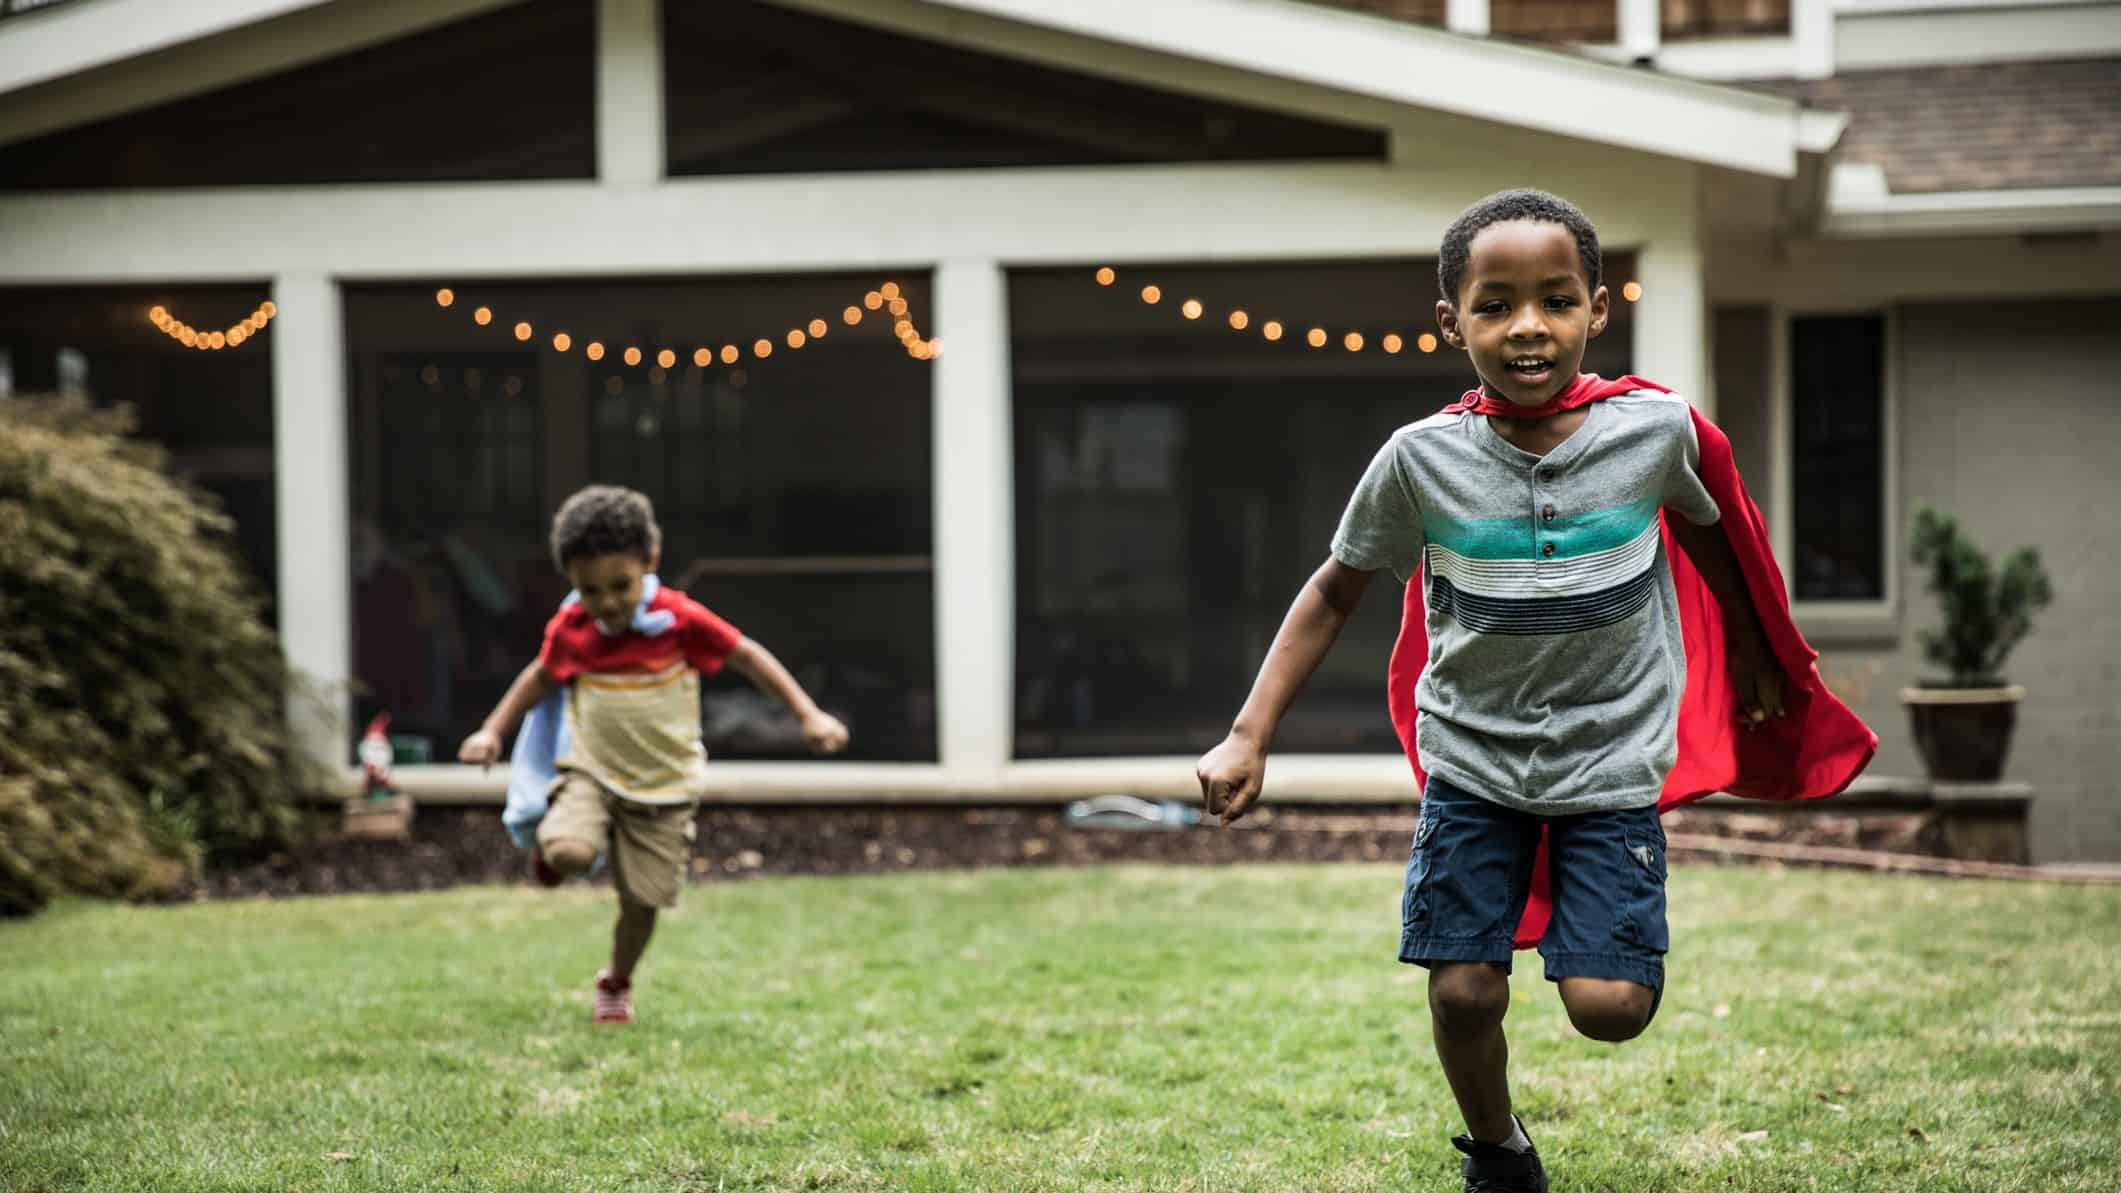 Two boys in capes running on the grass in front of their house.